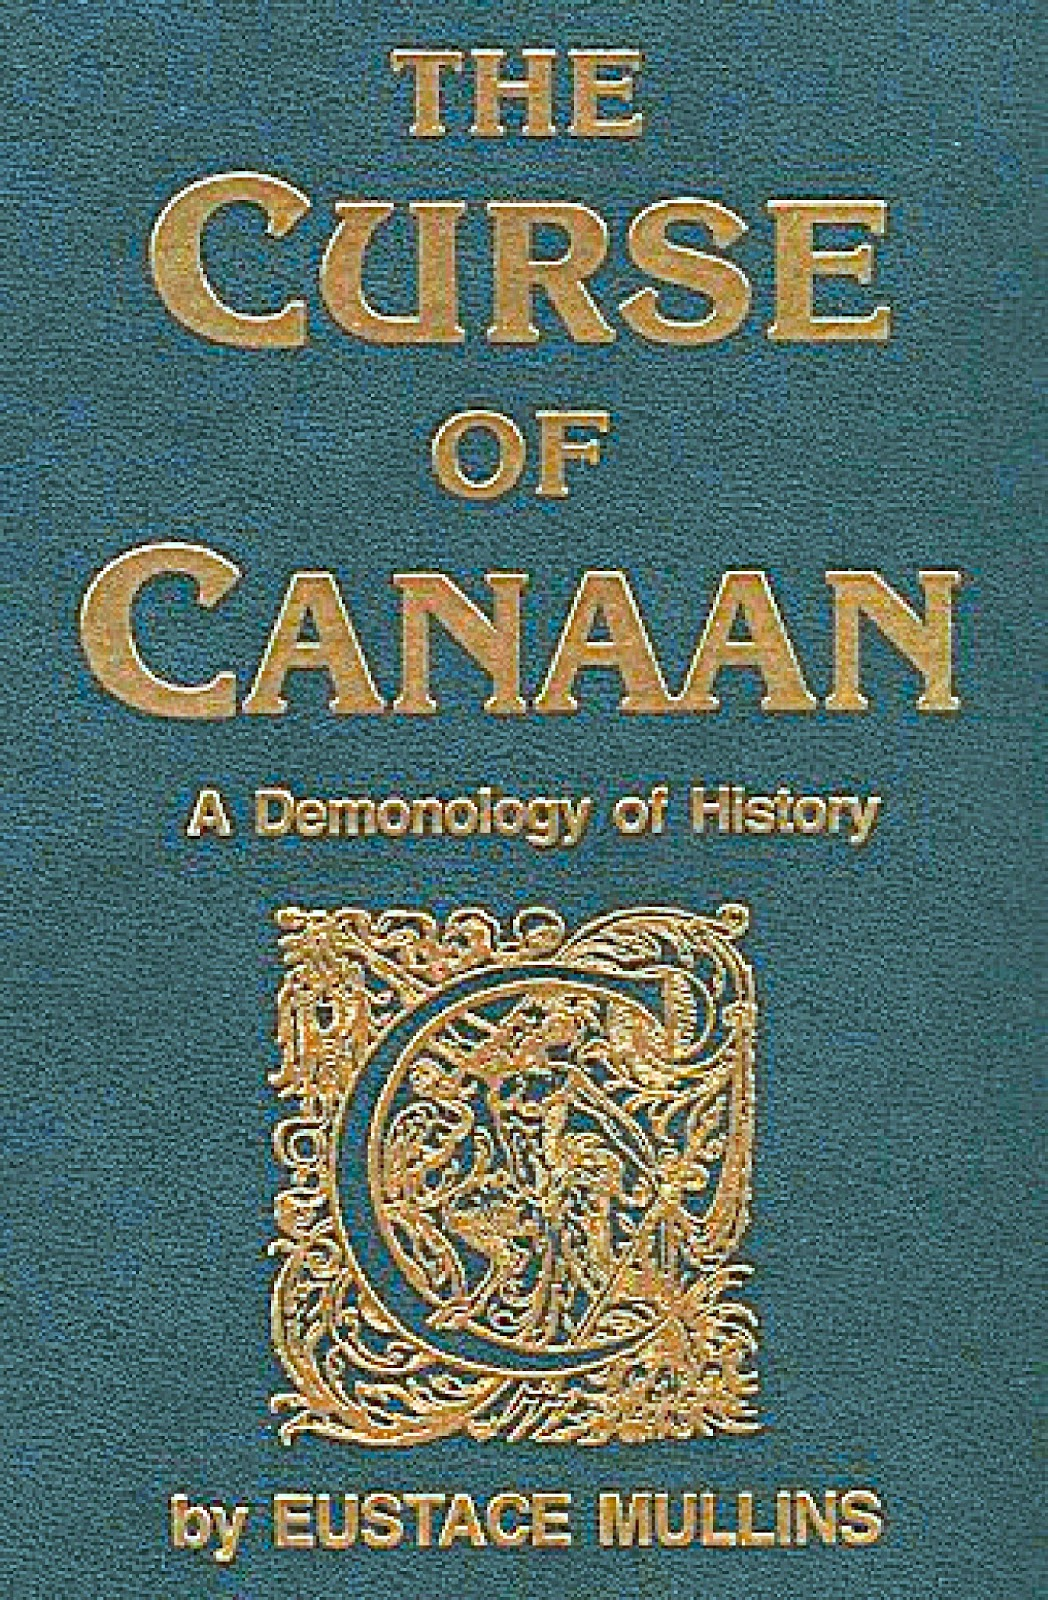 I've just added A New History of the Jews and The Curse of Canaan to the torrent. It should now be the most complete collection of Eustace's writings.